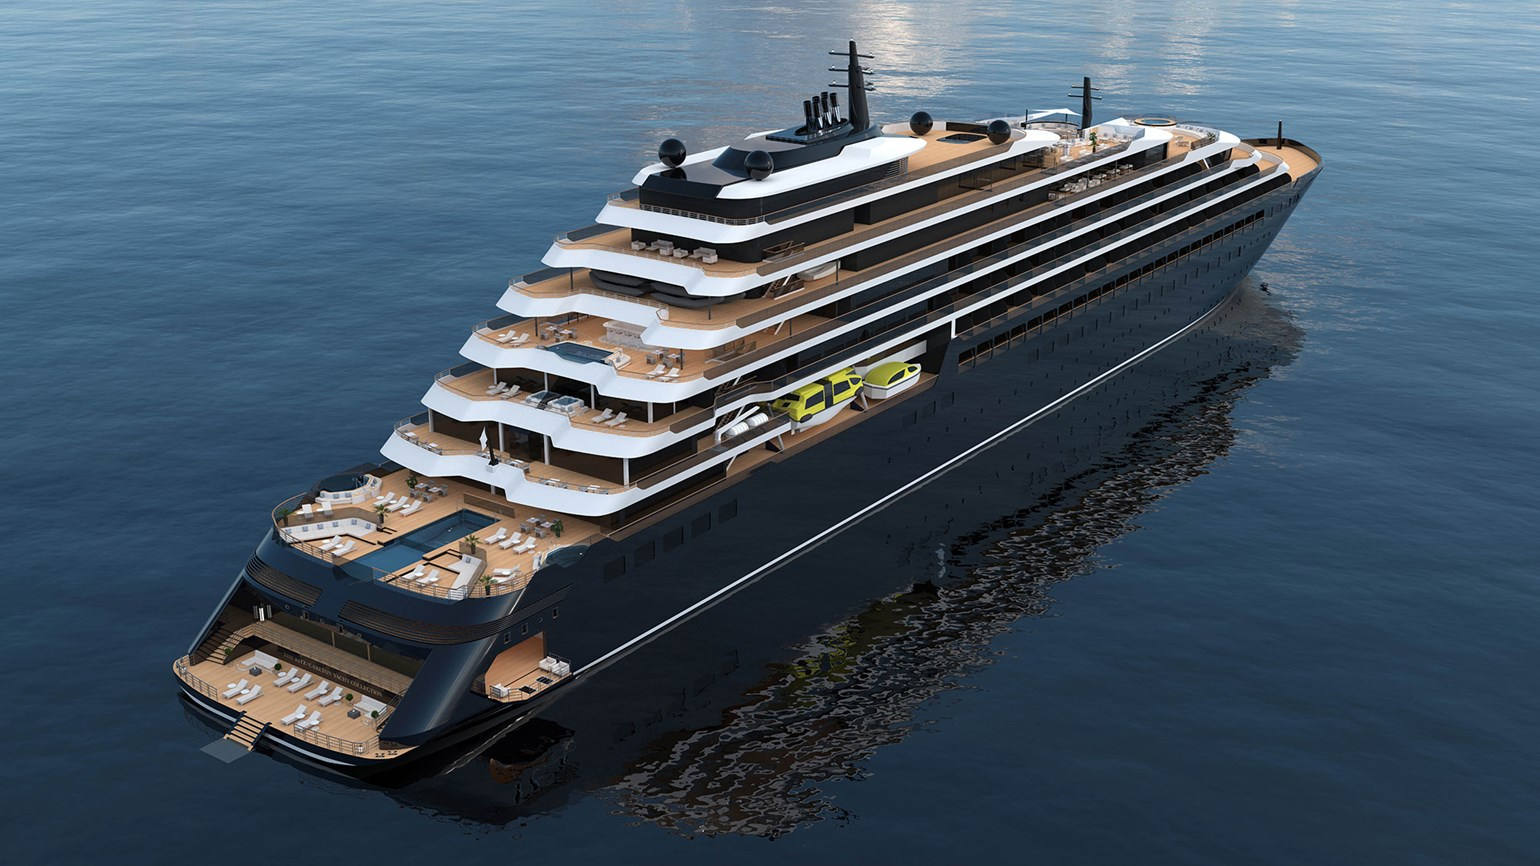 Ritz-Carlton luxury ship to be named Evrima